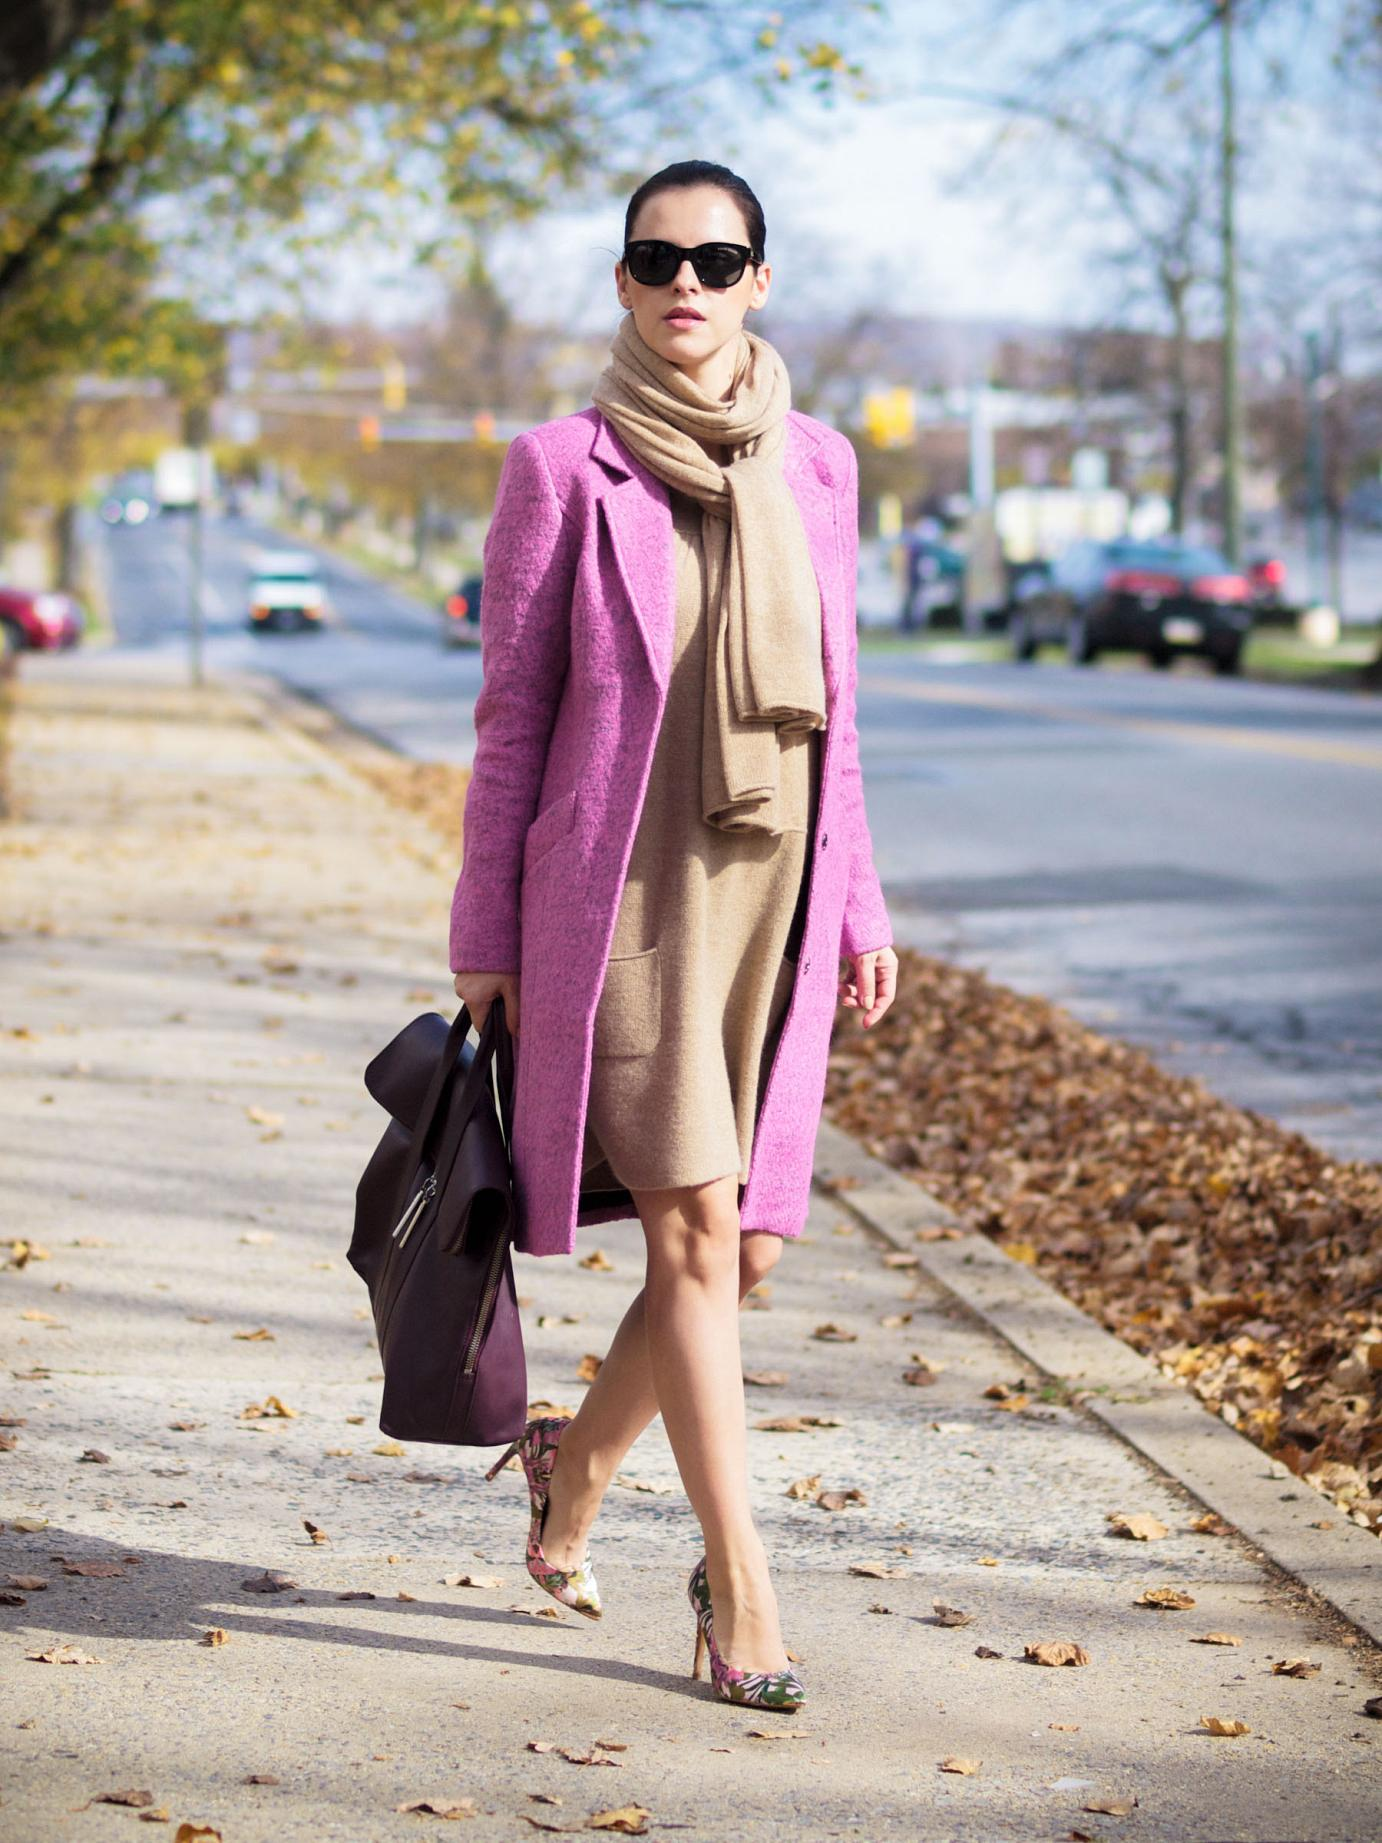 9.-cashmere-nude-dress.jpg